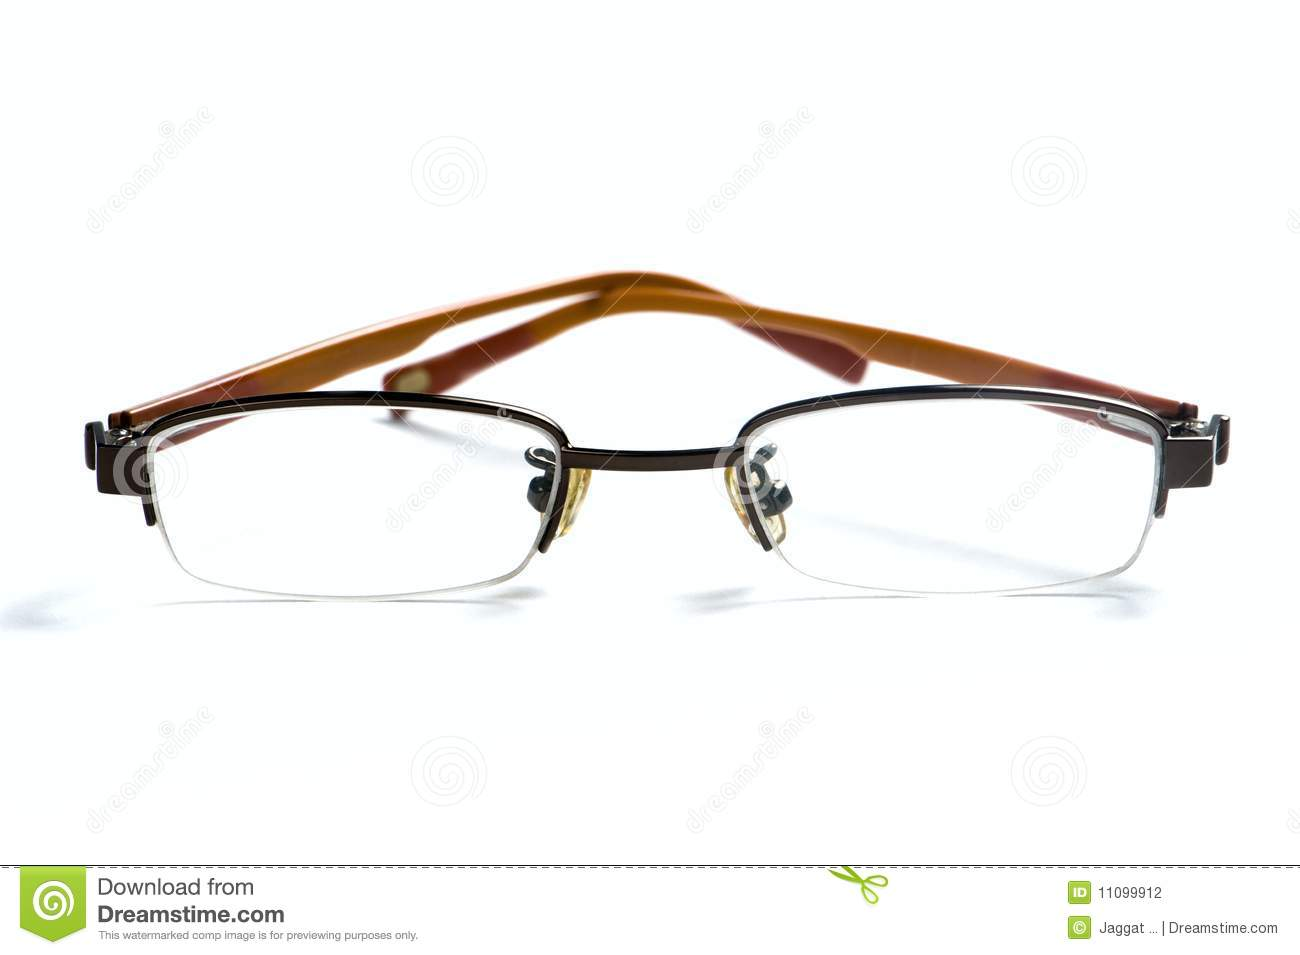 Glasses With Yellow Frame : Yellow Frame Eyeglasses Stock Photography - Image: 11099912